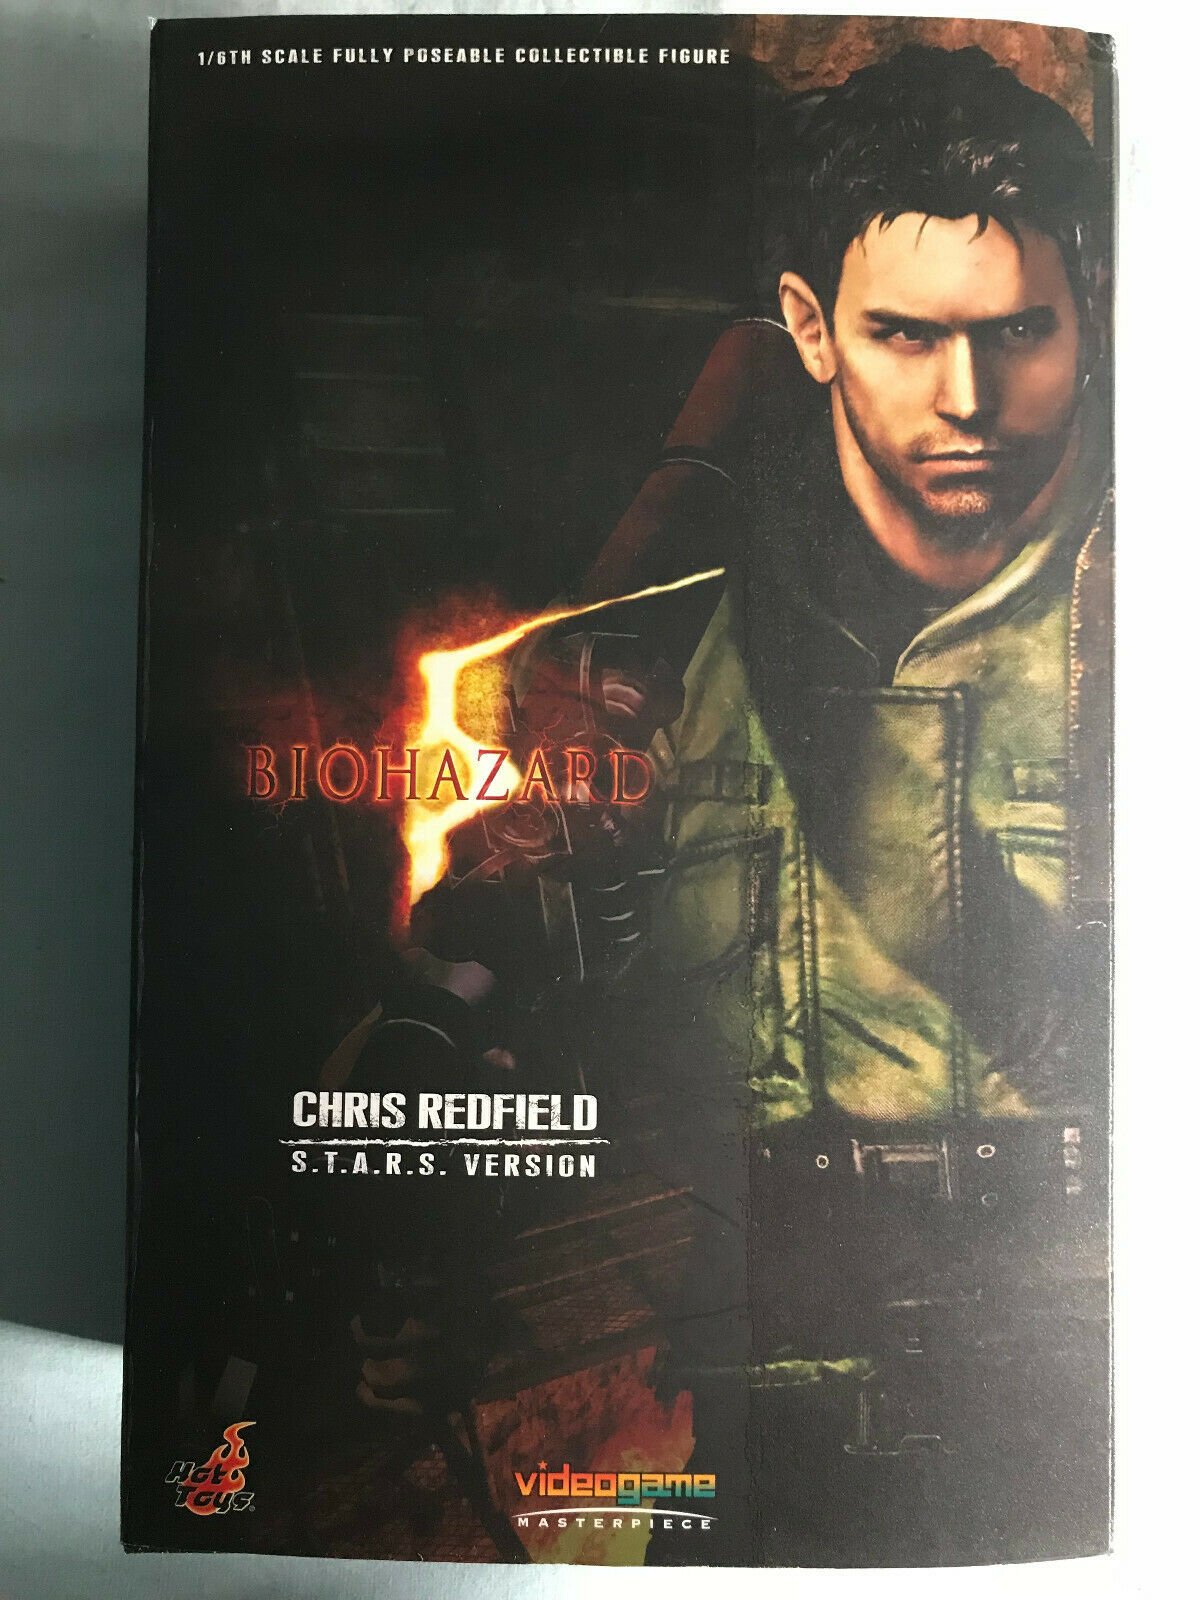 Hot Toys Resident Evil 5 Chris rotfield (S.T.A.R.S. Version)